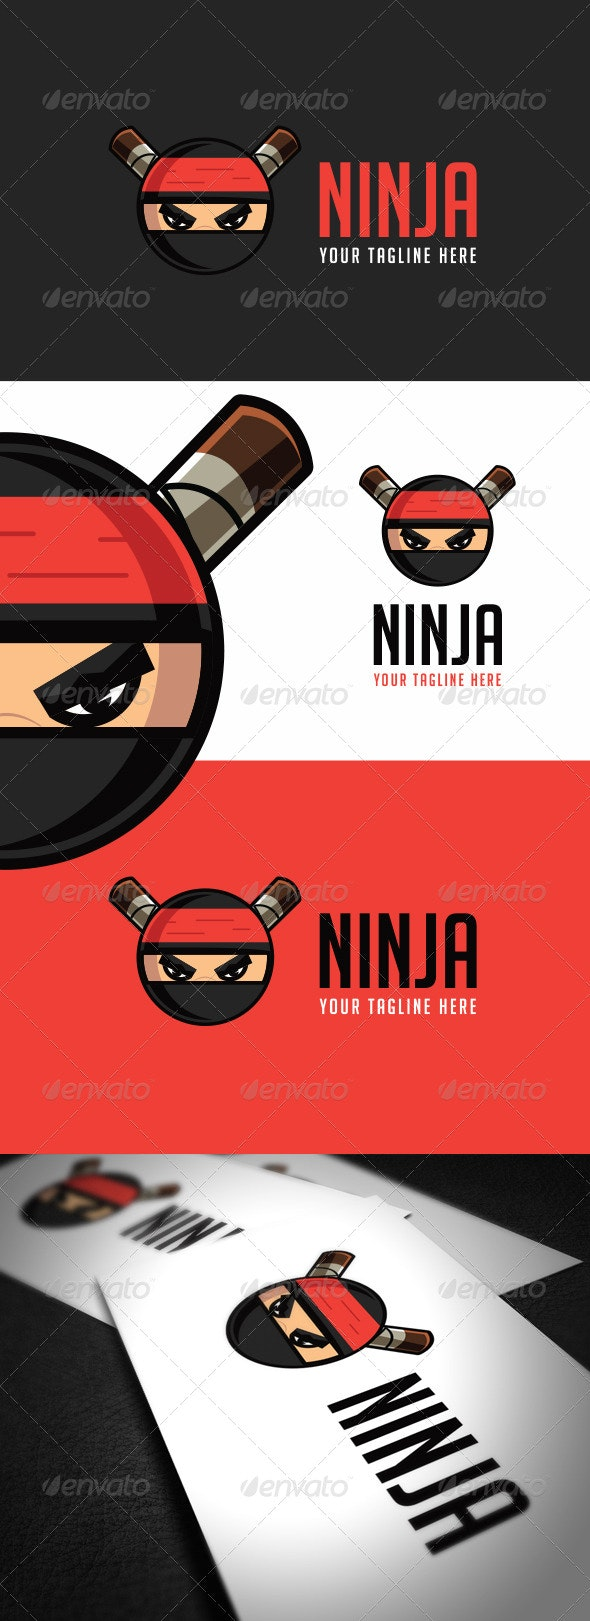 Ninja Logo Template - Vector Abstract